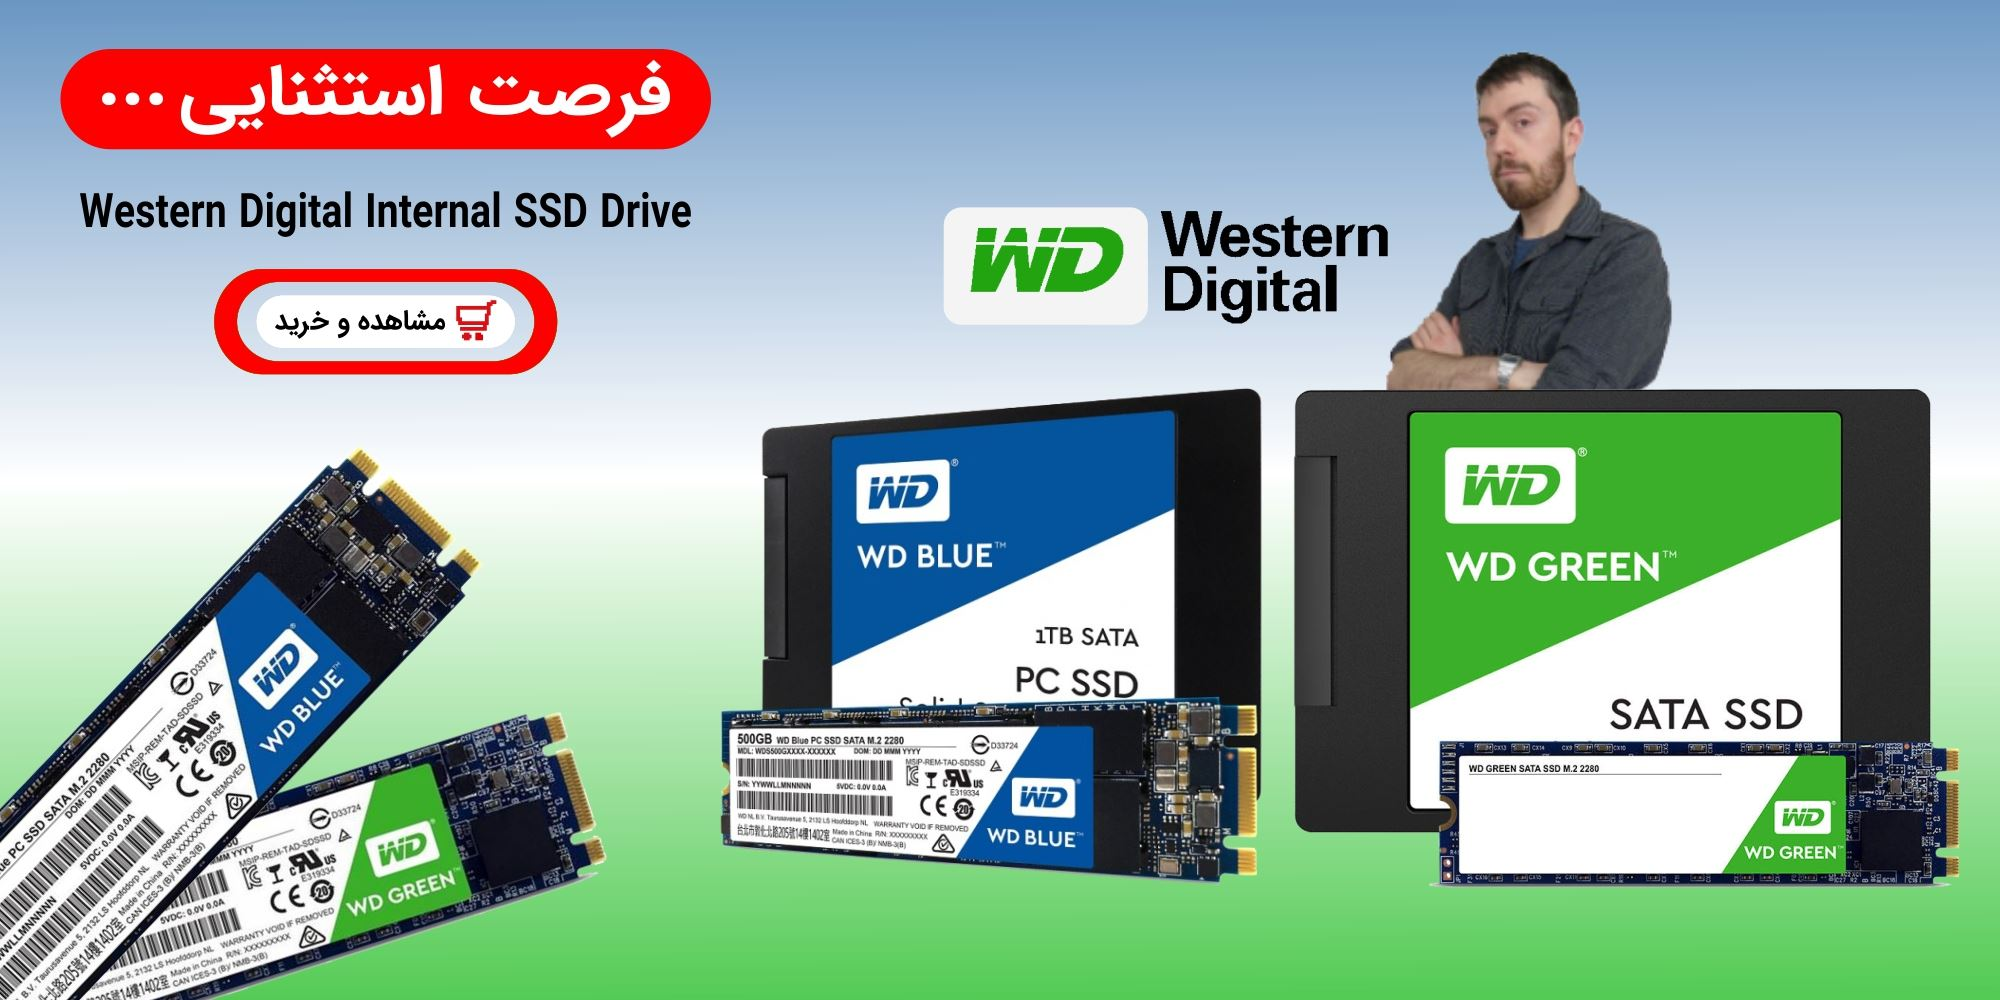 Western Digital Internal SSD Drive